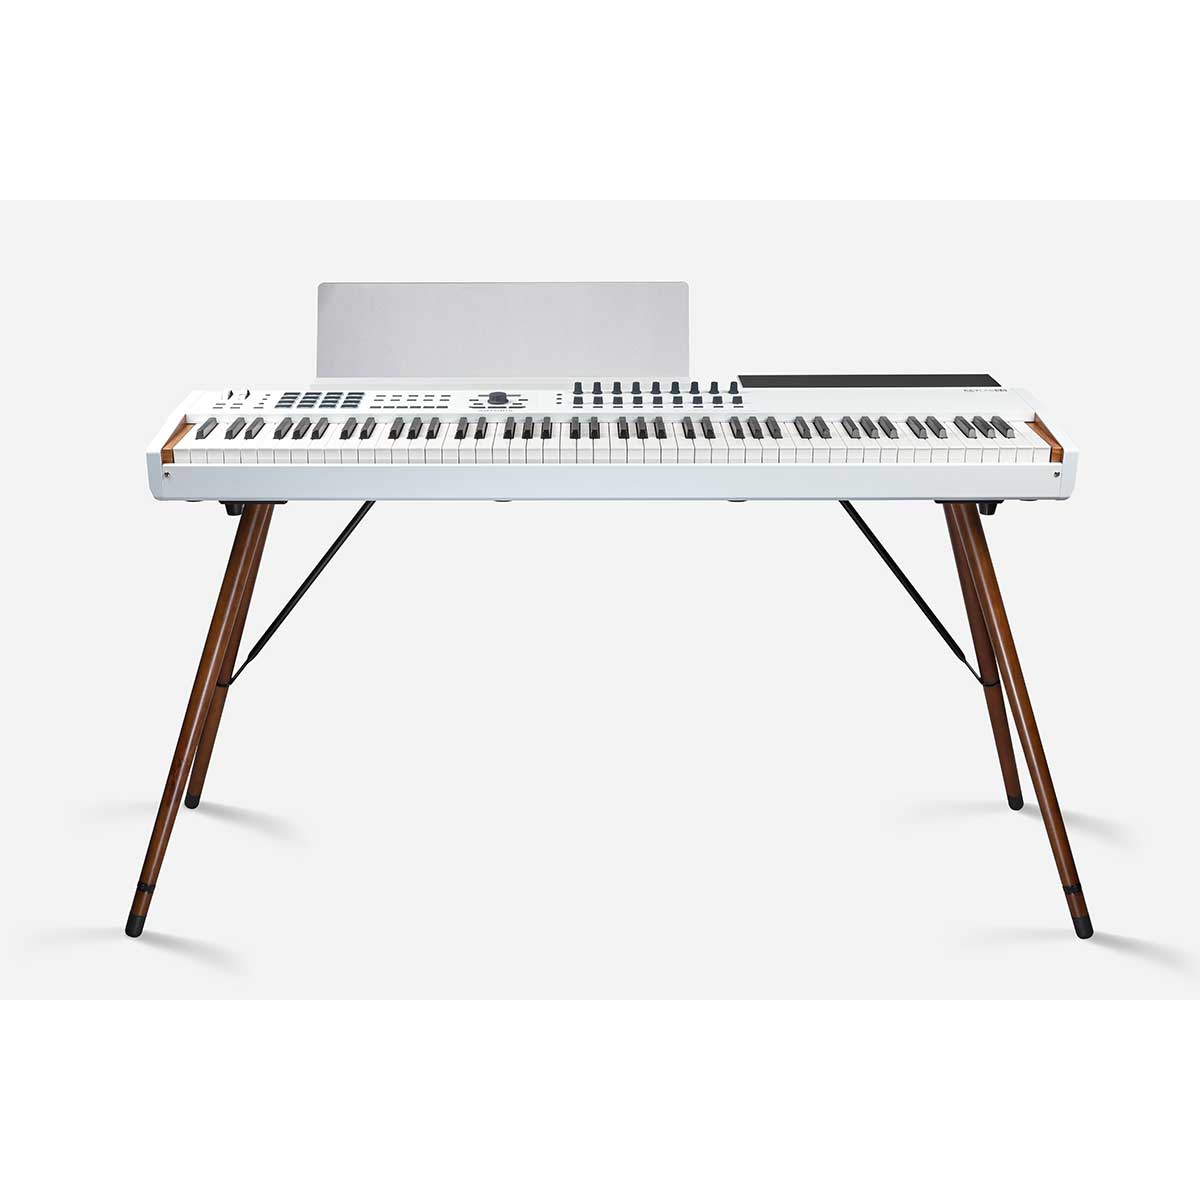 Arturia KeyLab 88 MkII with V Collection 6 and Wooden Legs - Limited Edition!